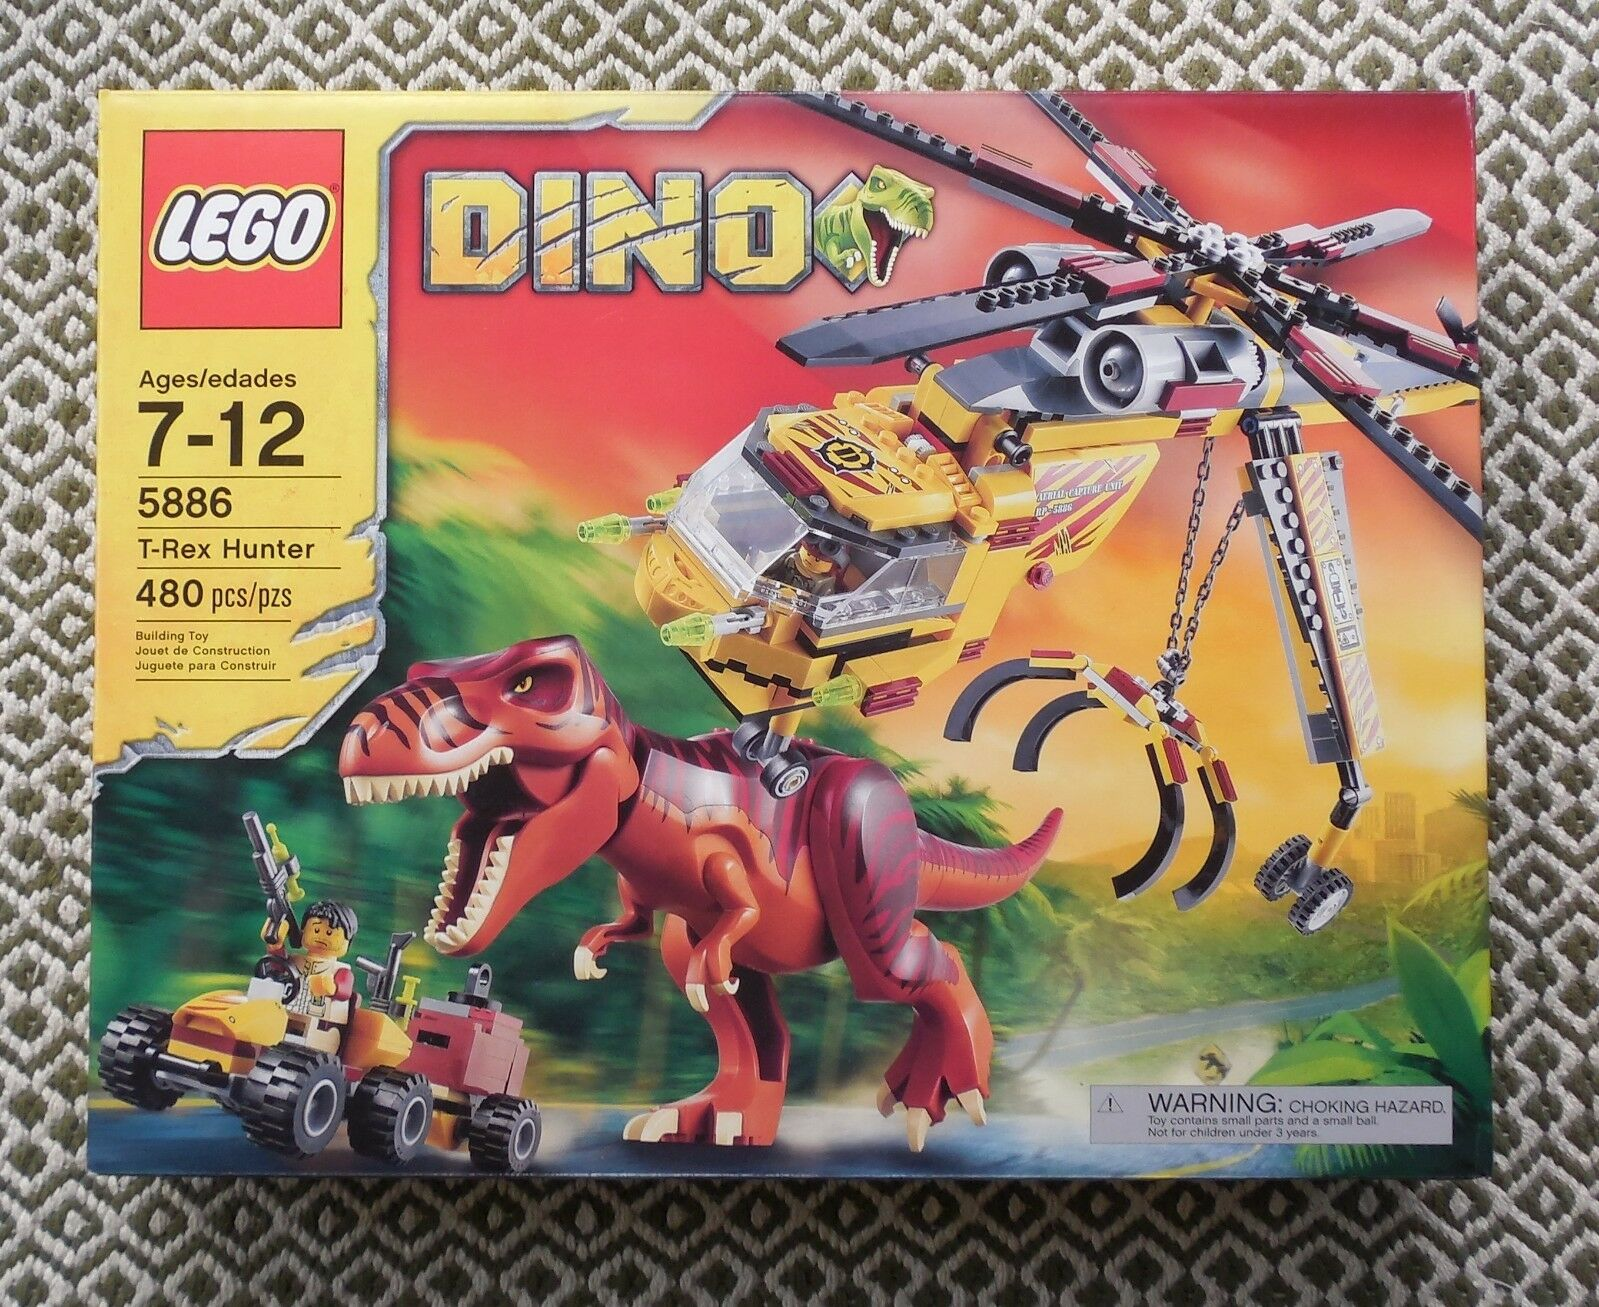 nouveau  LEGO Set 5886 Dino T-Rex Hunter FACTORY SEALED Retried  en solde 70% de réduction